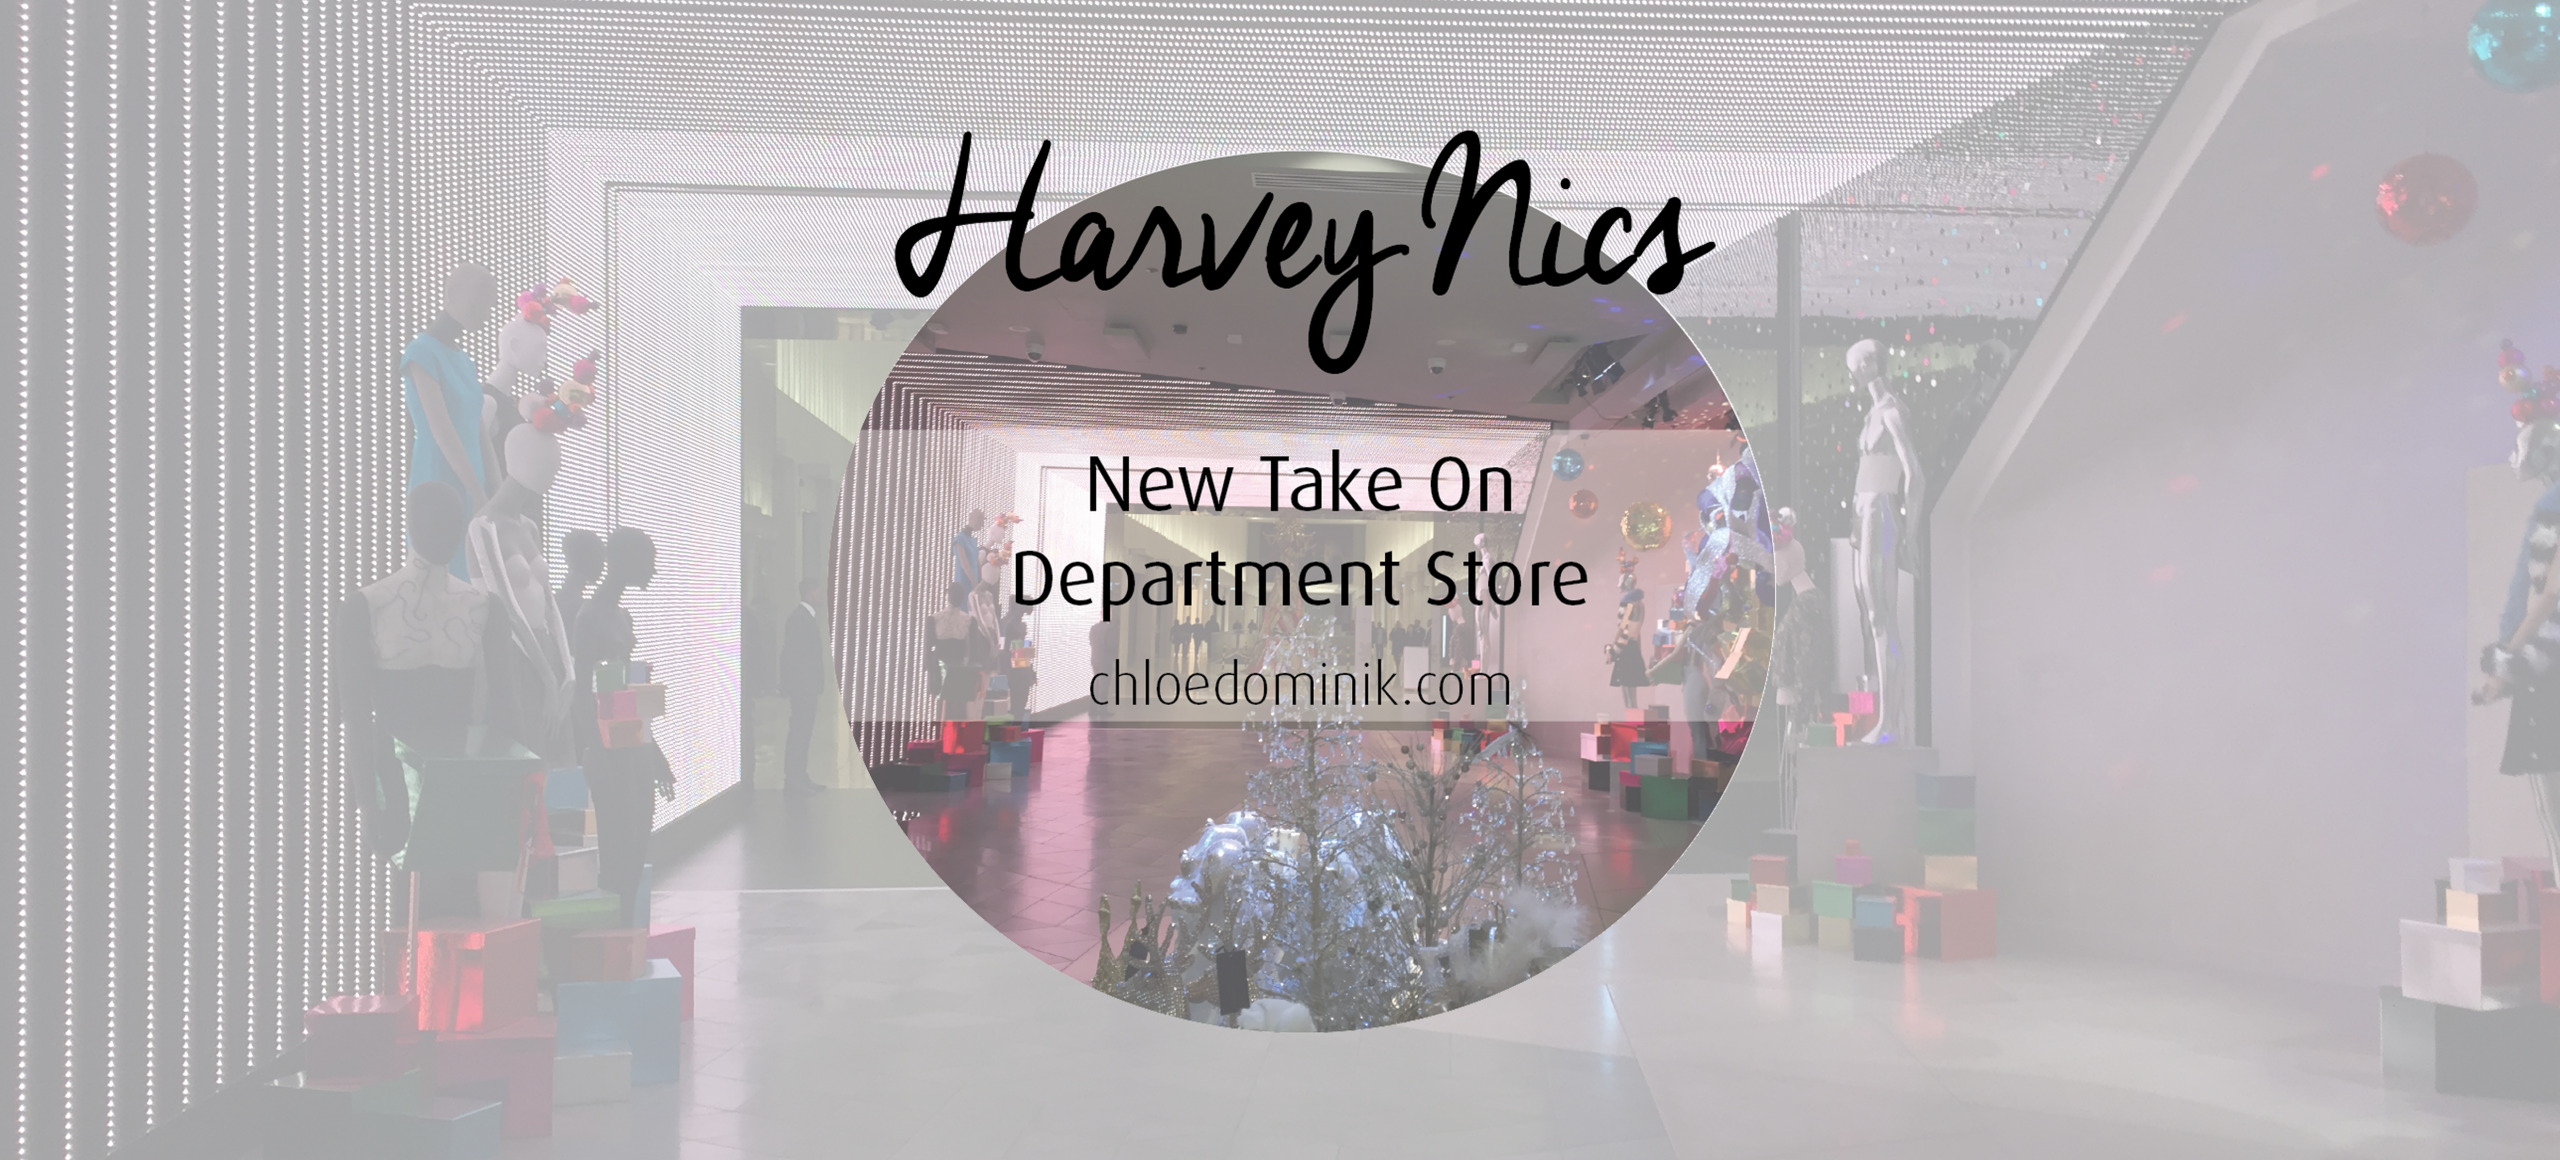 Harvey Nics: New Take On Department Store